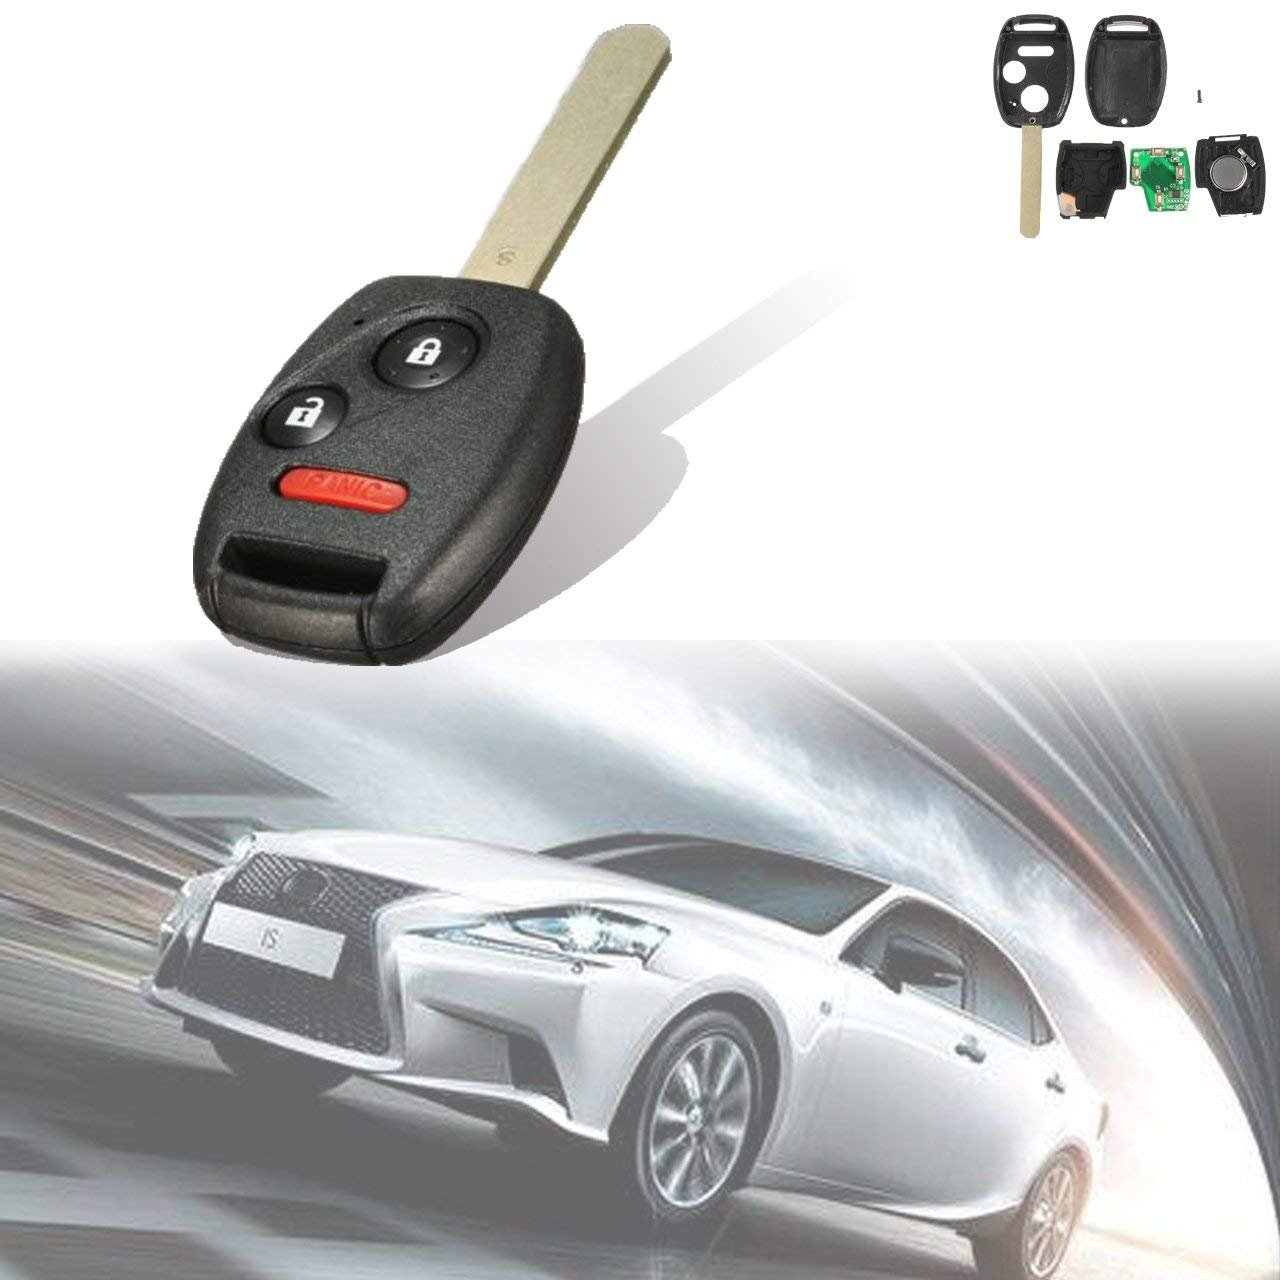 TUINCYN Black Keyless Fob 433MHz Chip Entry Remote Control Uncut Car Key Replacement with 3 Button for for Honda Pilot 2005-2008(Pack of 1)